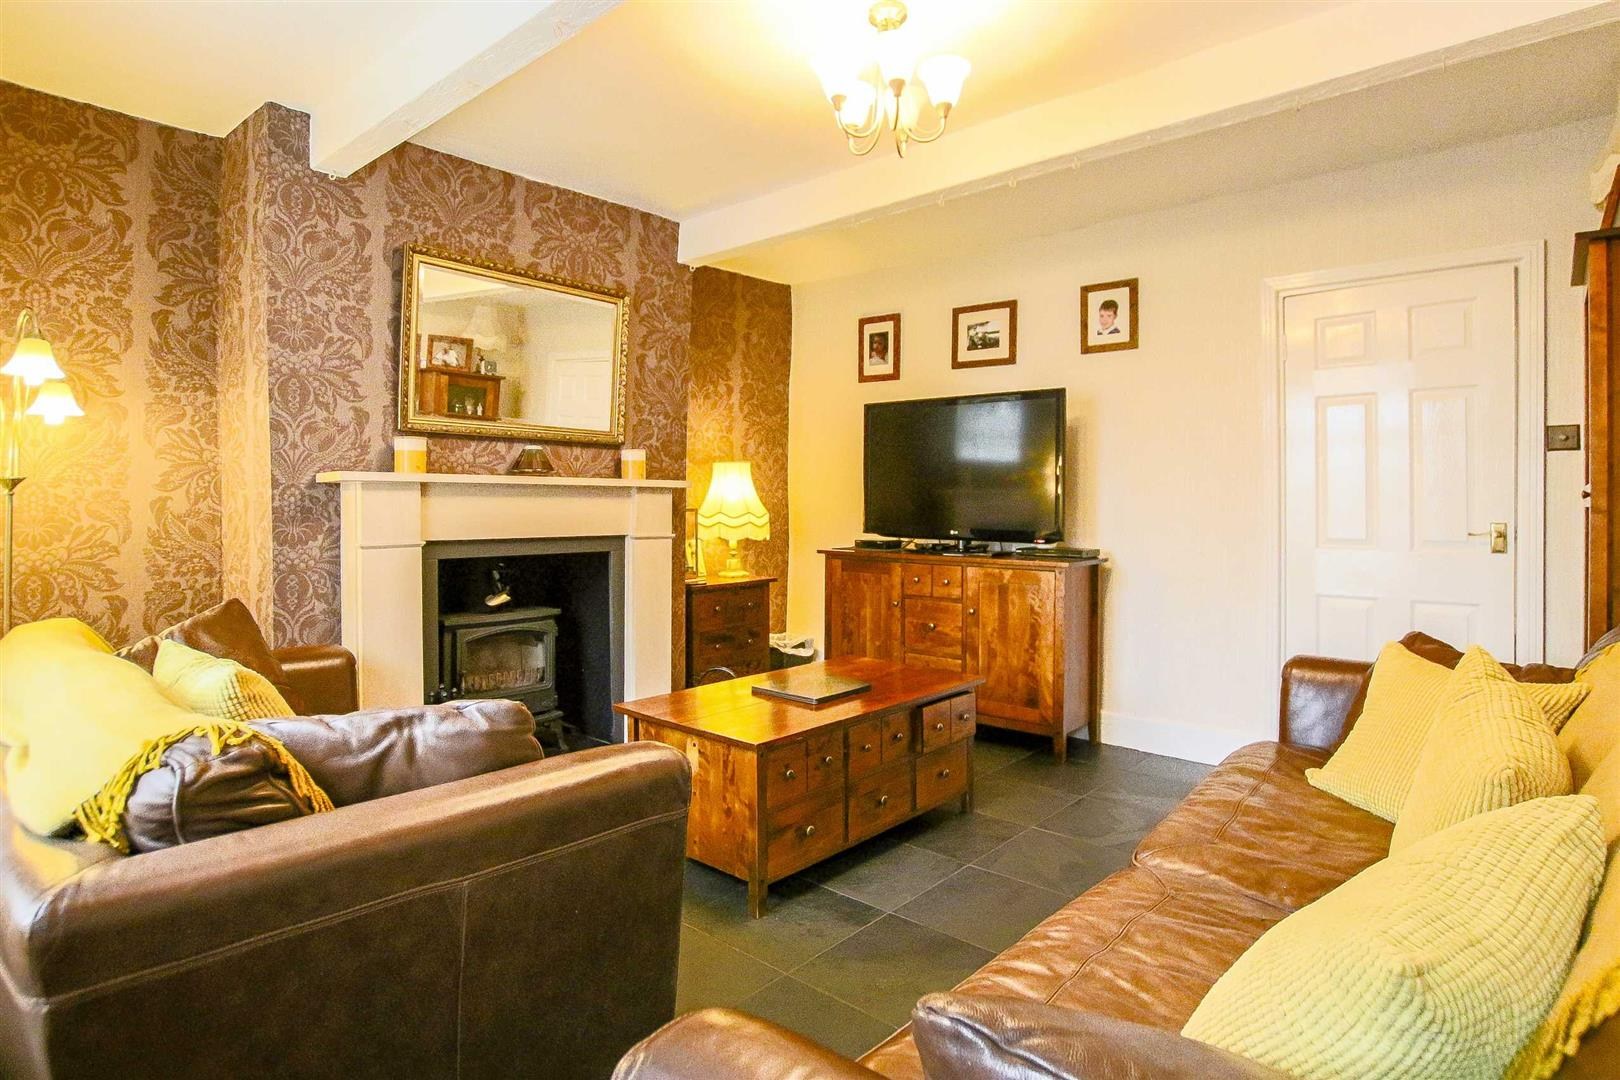 3 Bed Mid Terrace House For Sale - Main Image